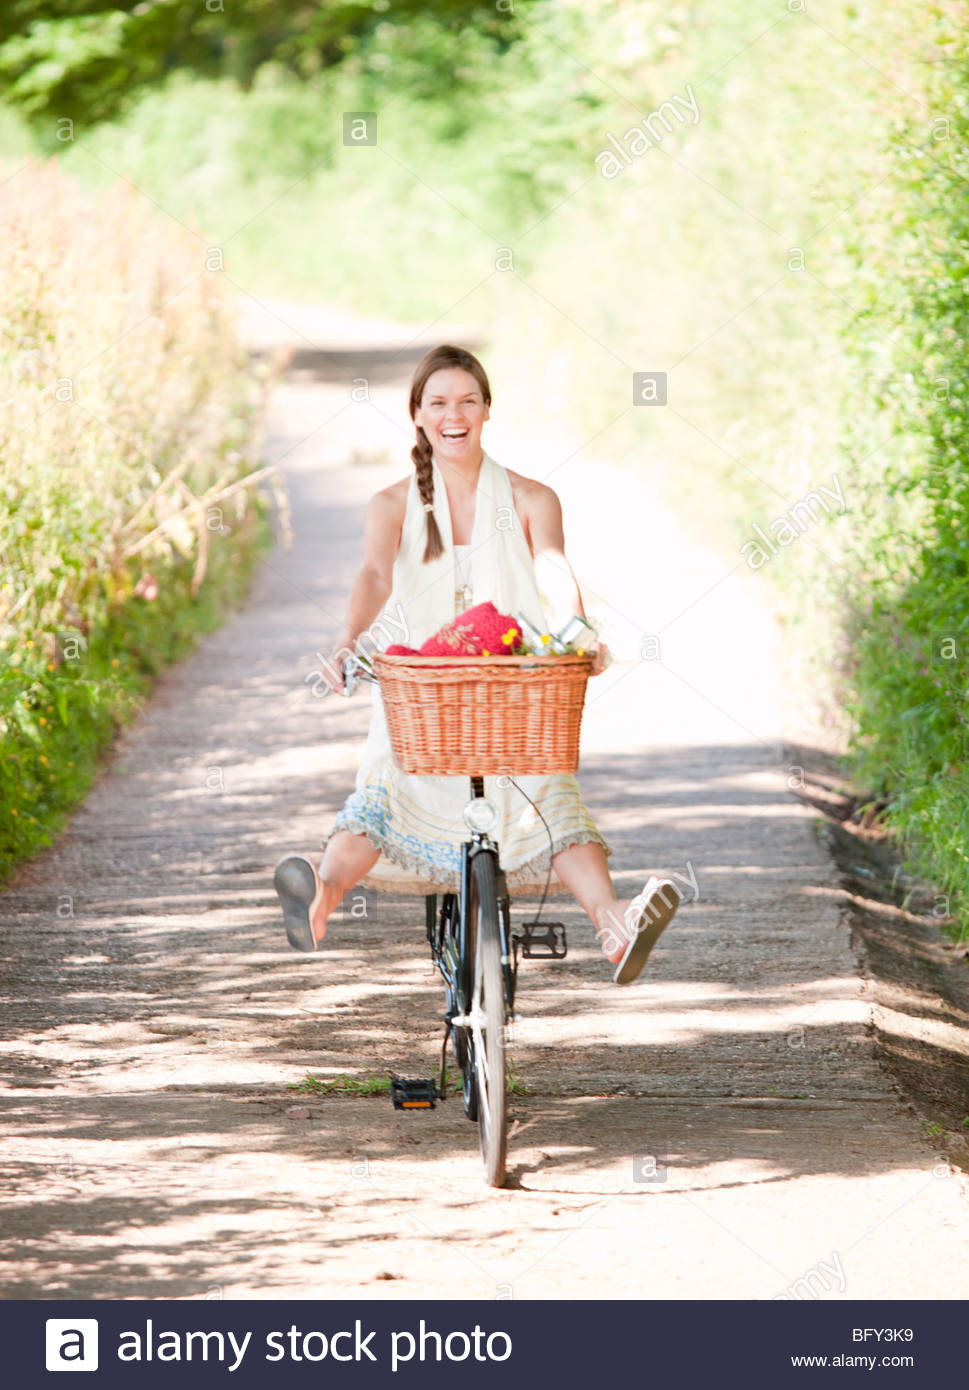 Woman cycling in country lane - Stock Image